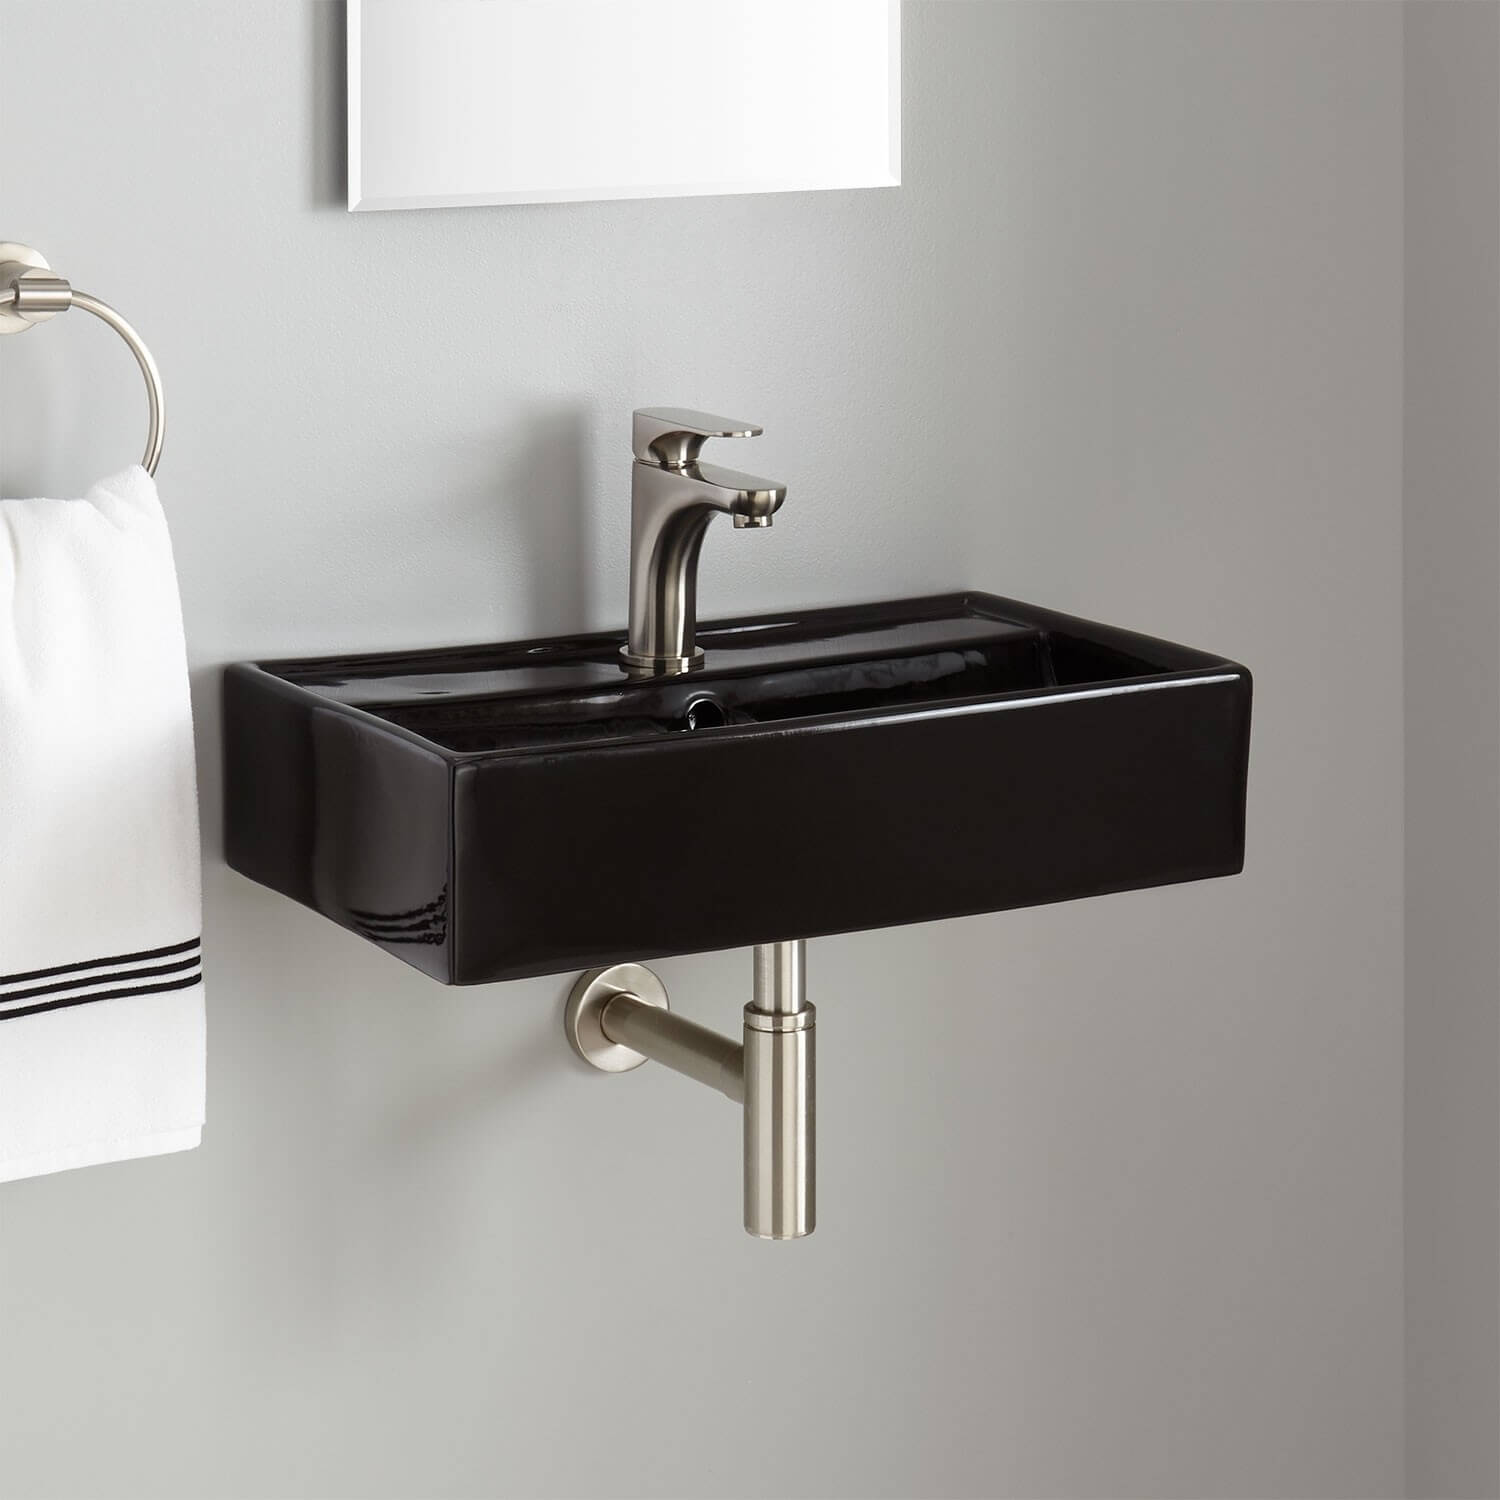 Wall mounted sink.